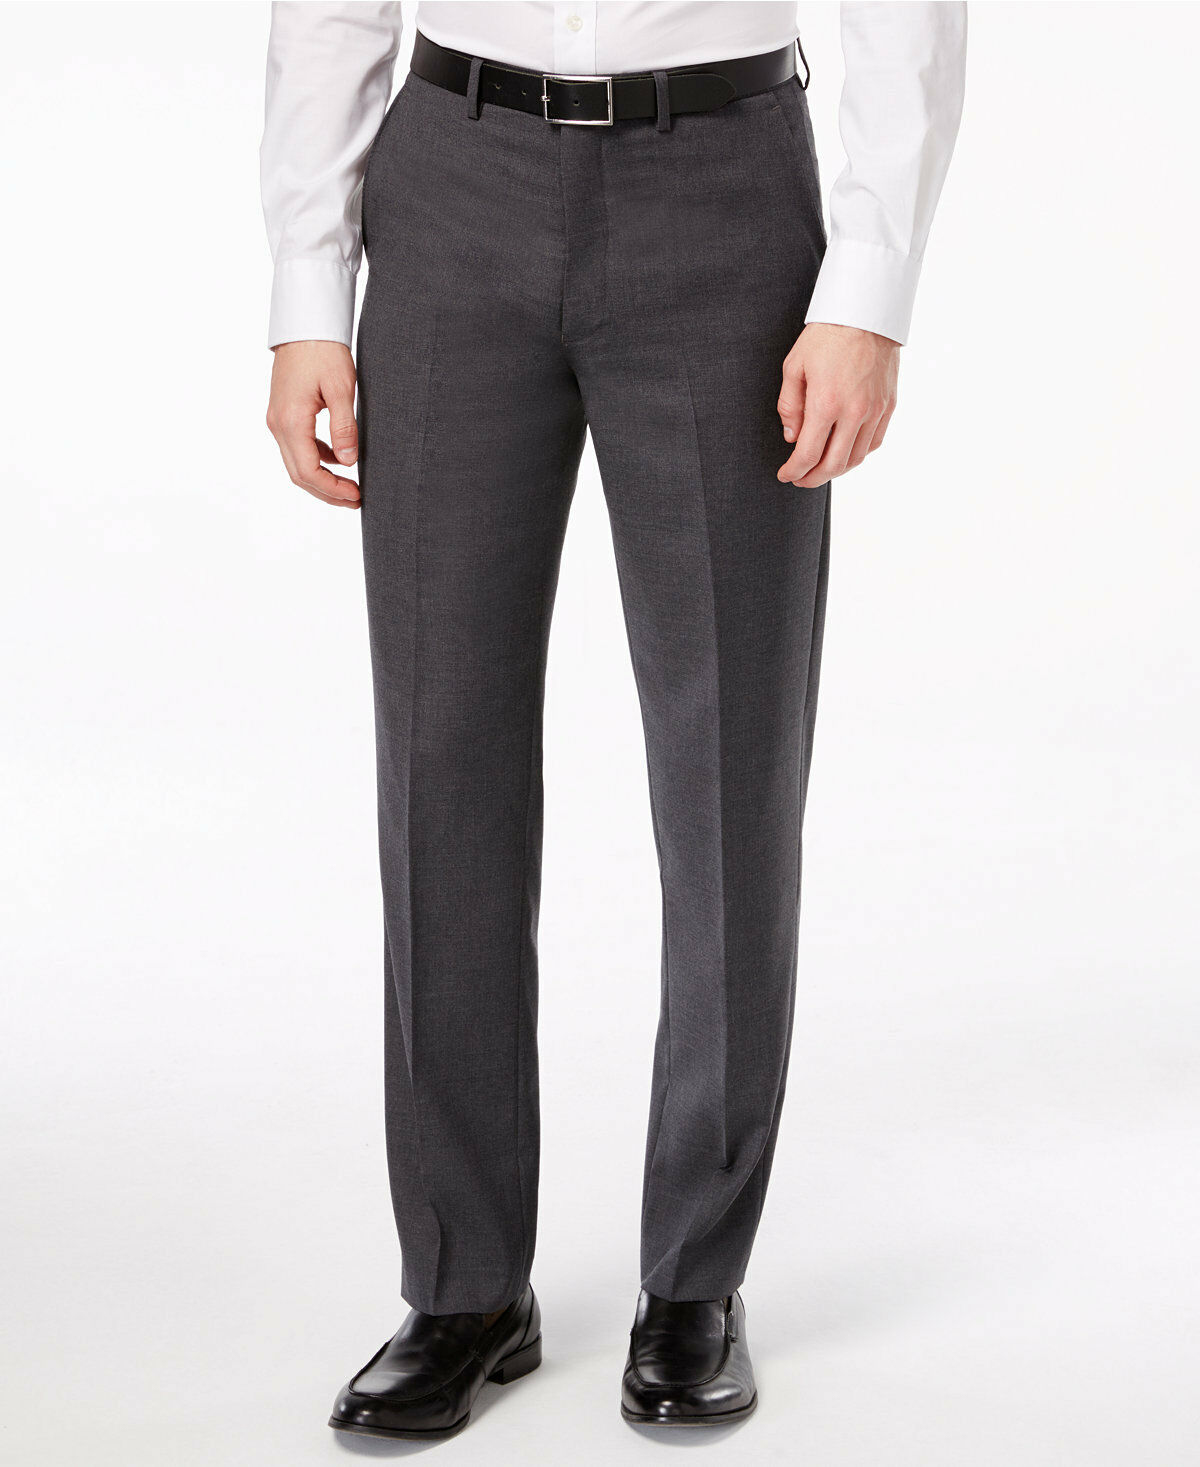 Ryan Seacrest 7621 Distinction Solid Grey Modern Fit Pants Size 33-32